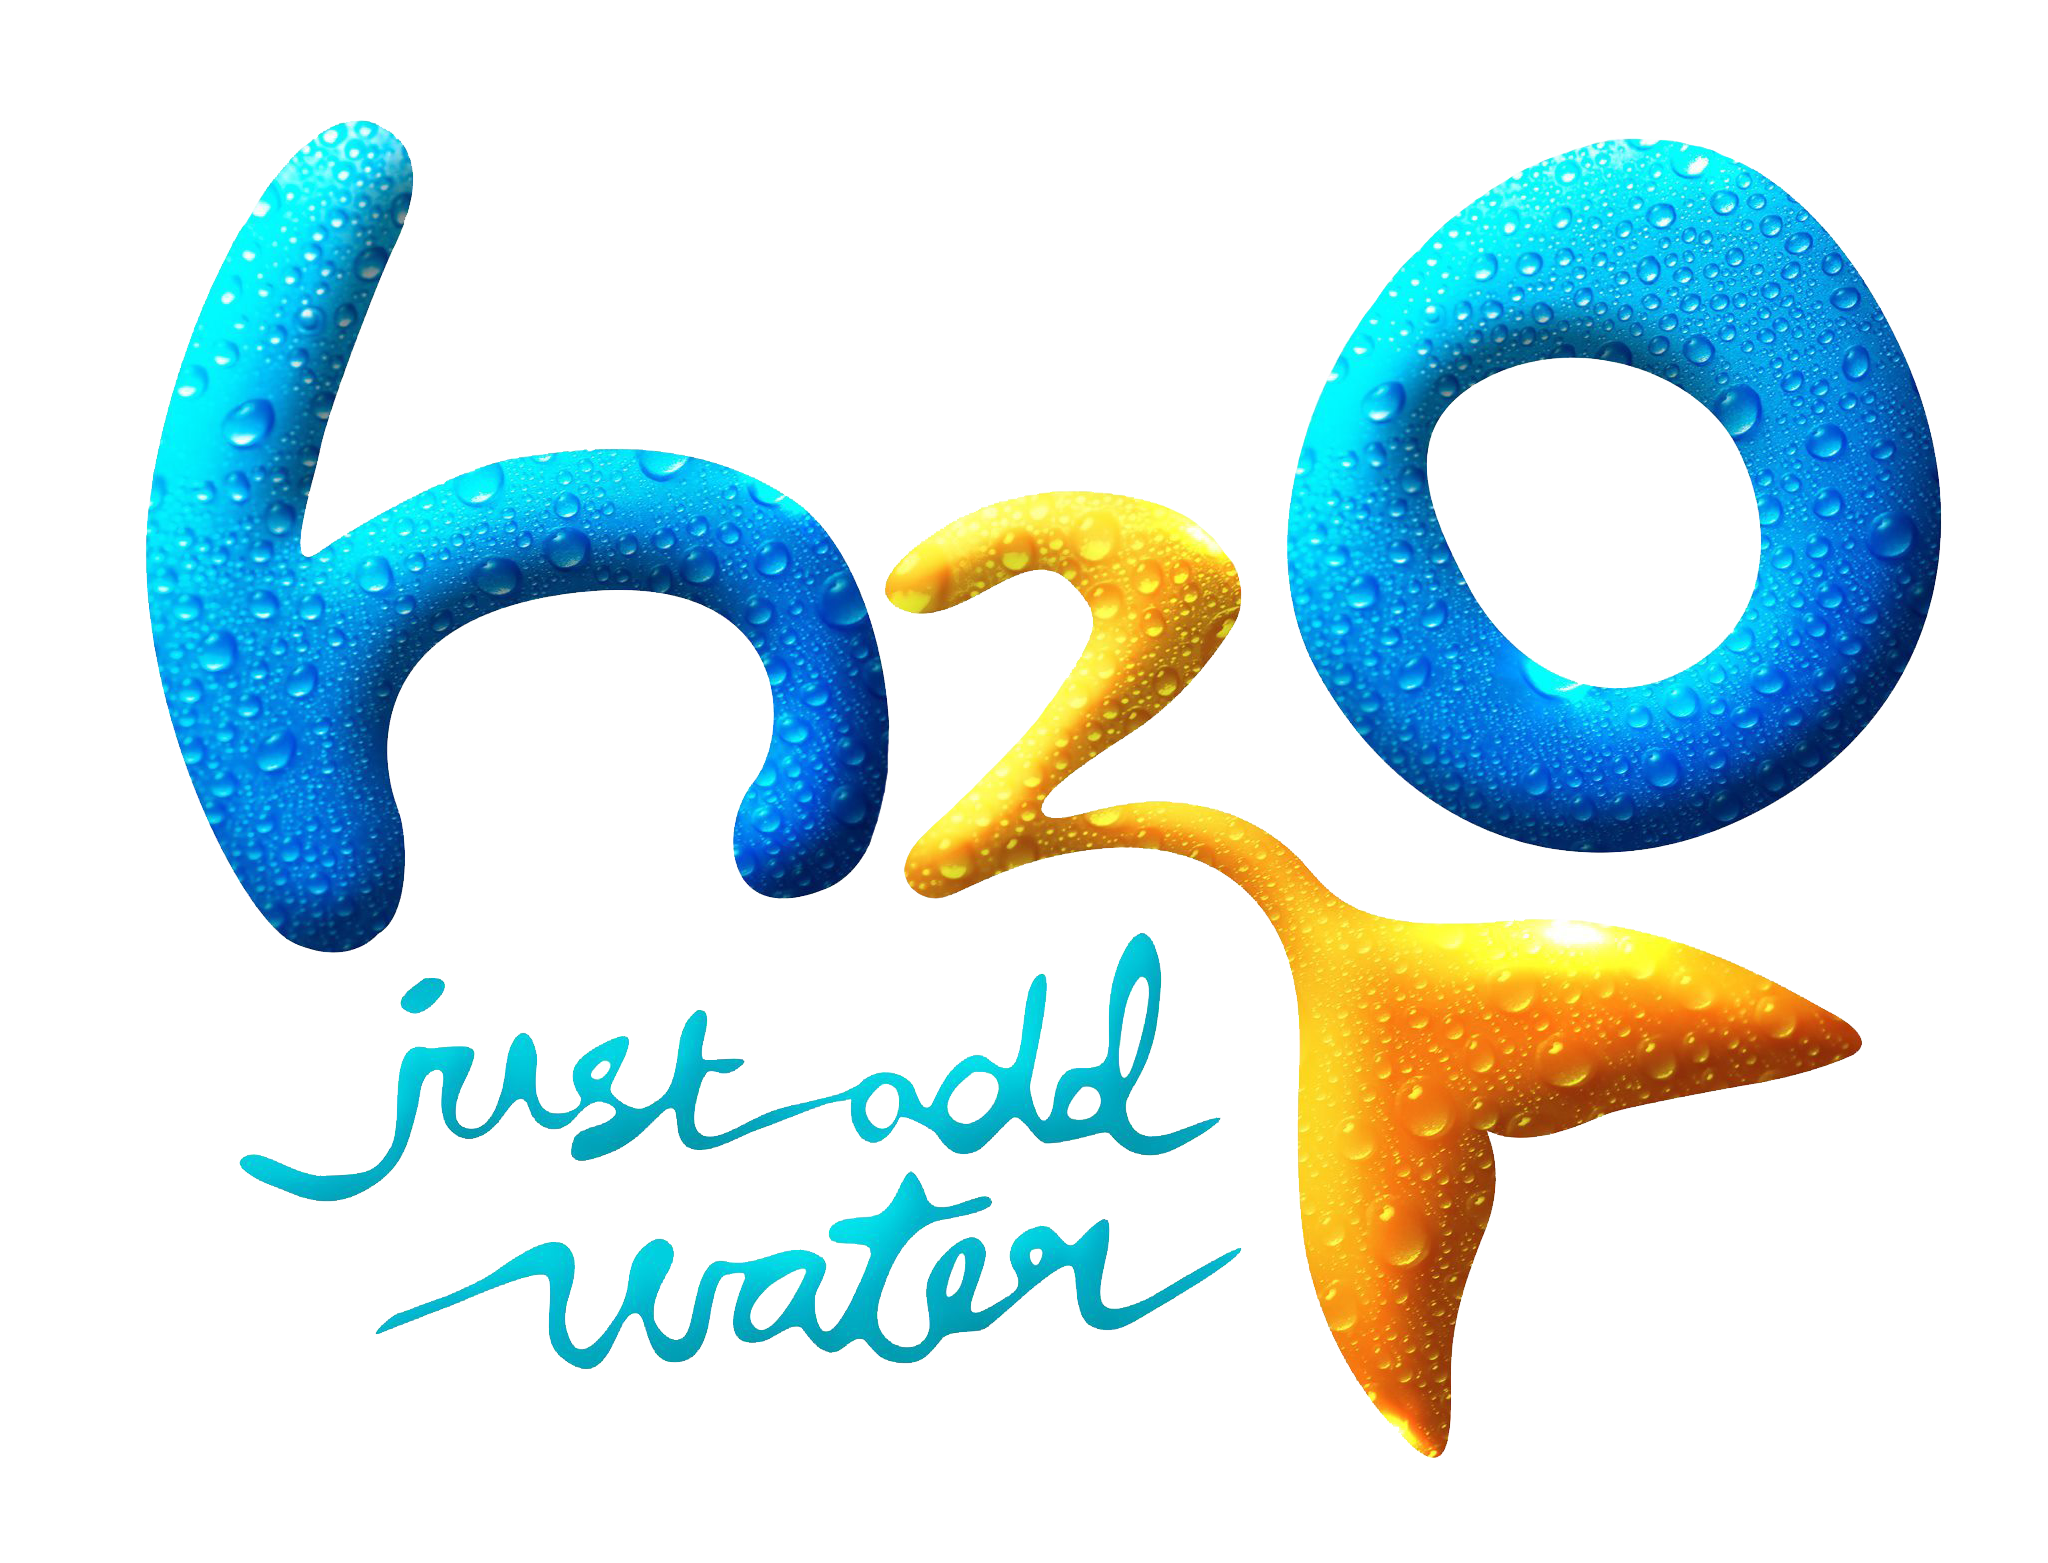 H2o just add water h2o just add water wiki fandom for H2o just add water season 2